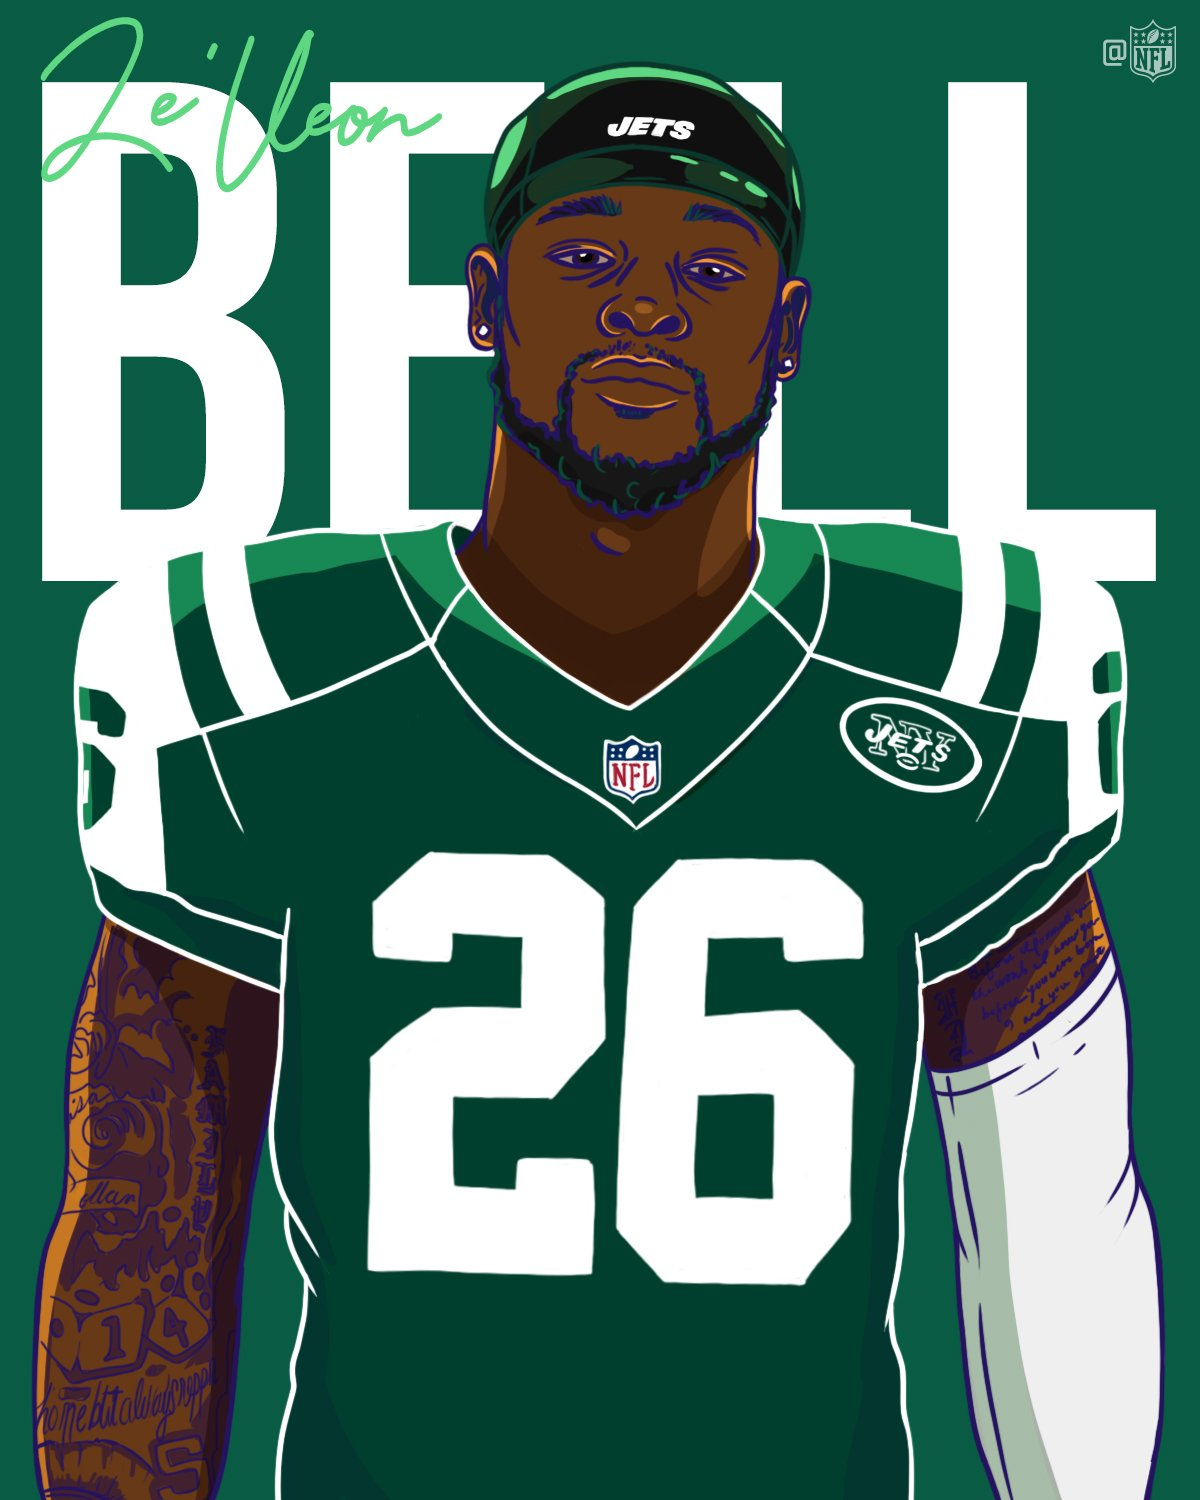 Welcome to the @nyjets, @LeVeonBell! https://t.co/dGYlhXqHbE